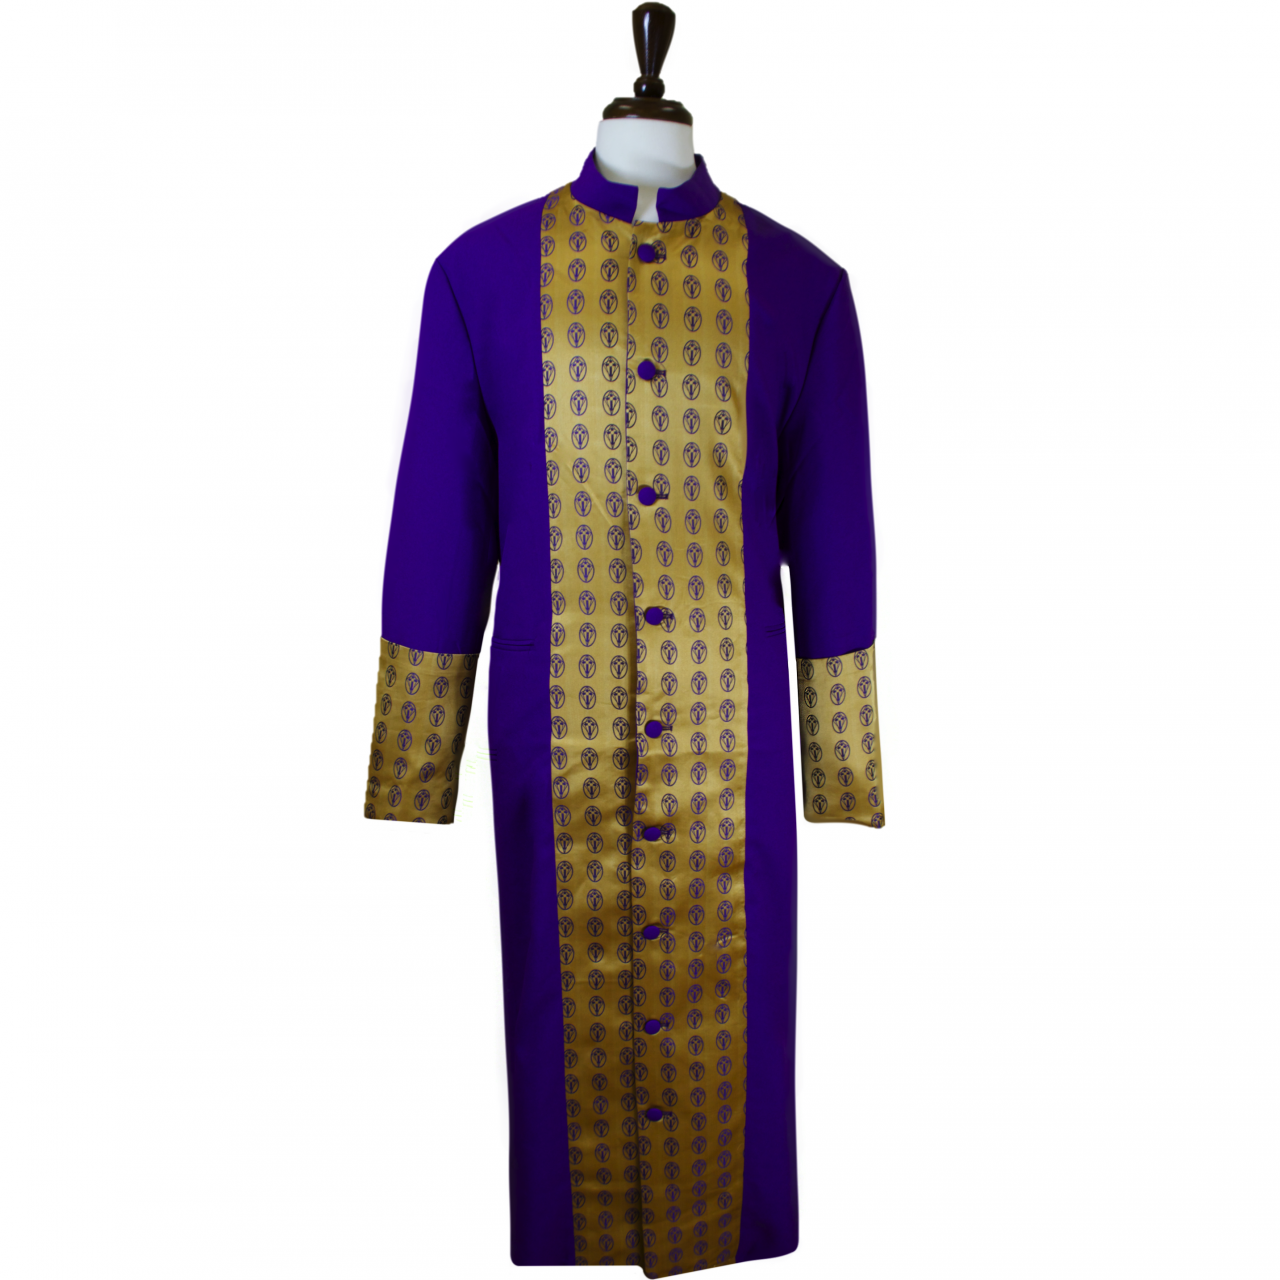 806 M. Men's Premium Clergy/Pastor Robe - Purple/Gold Brocade